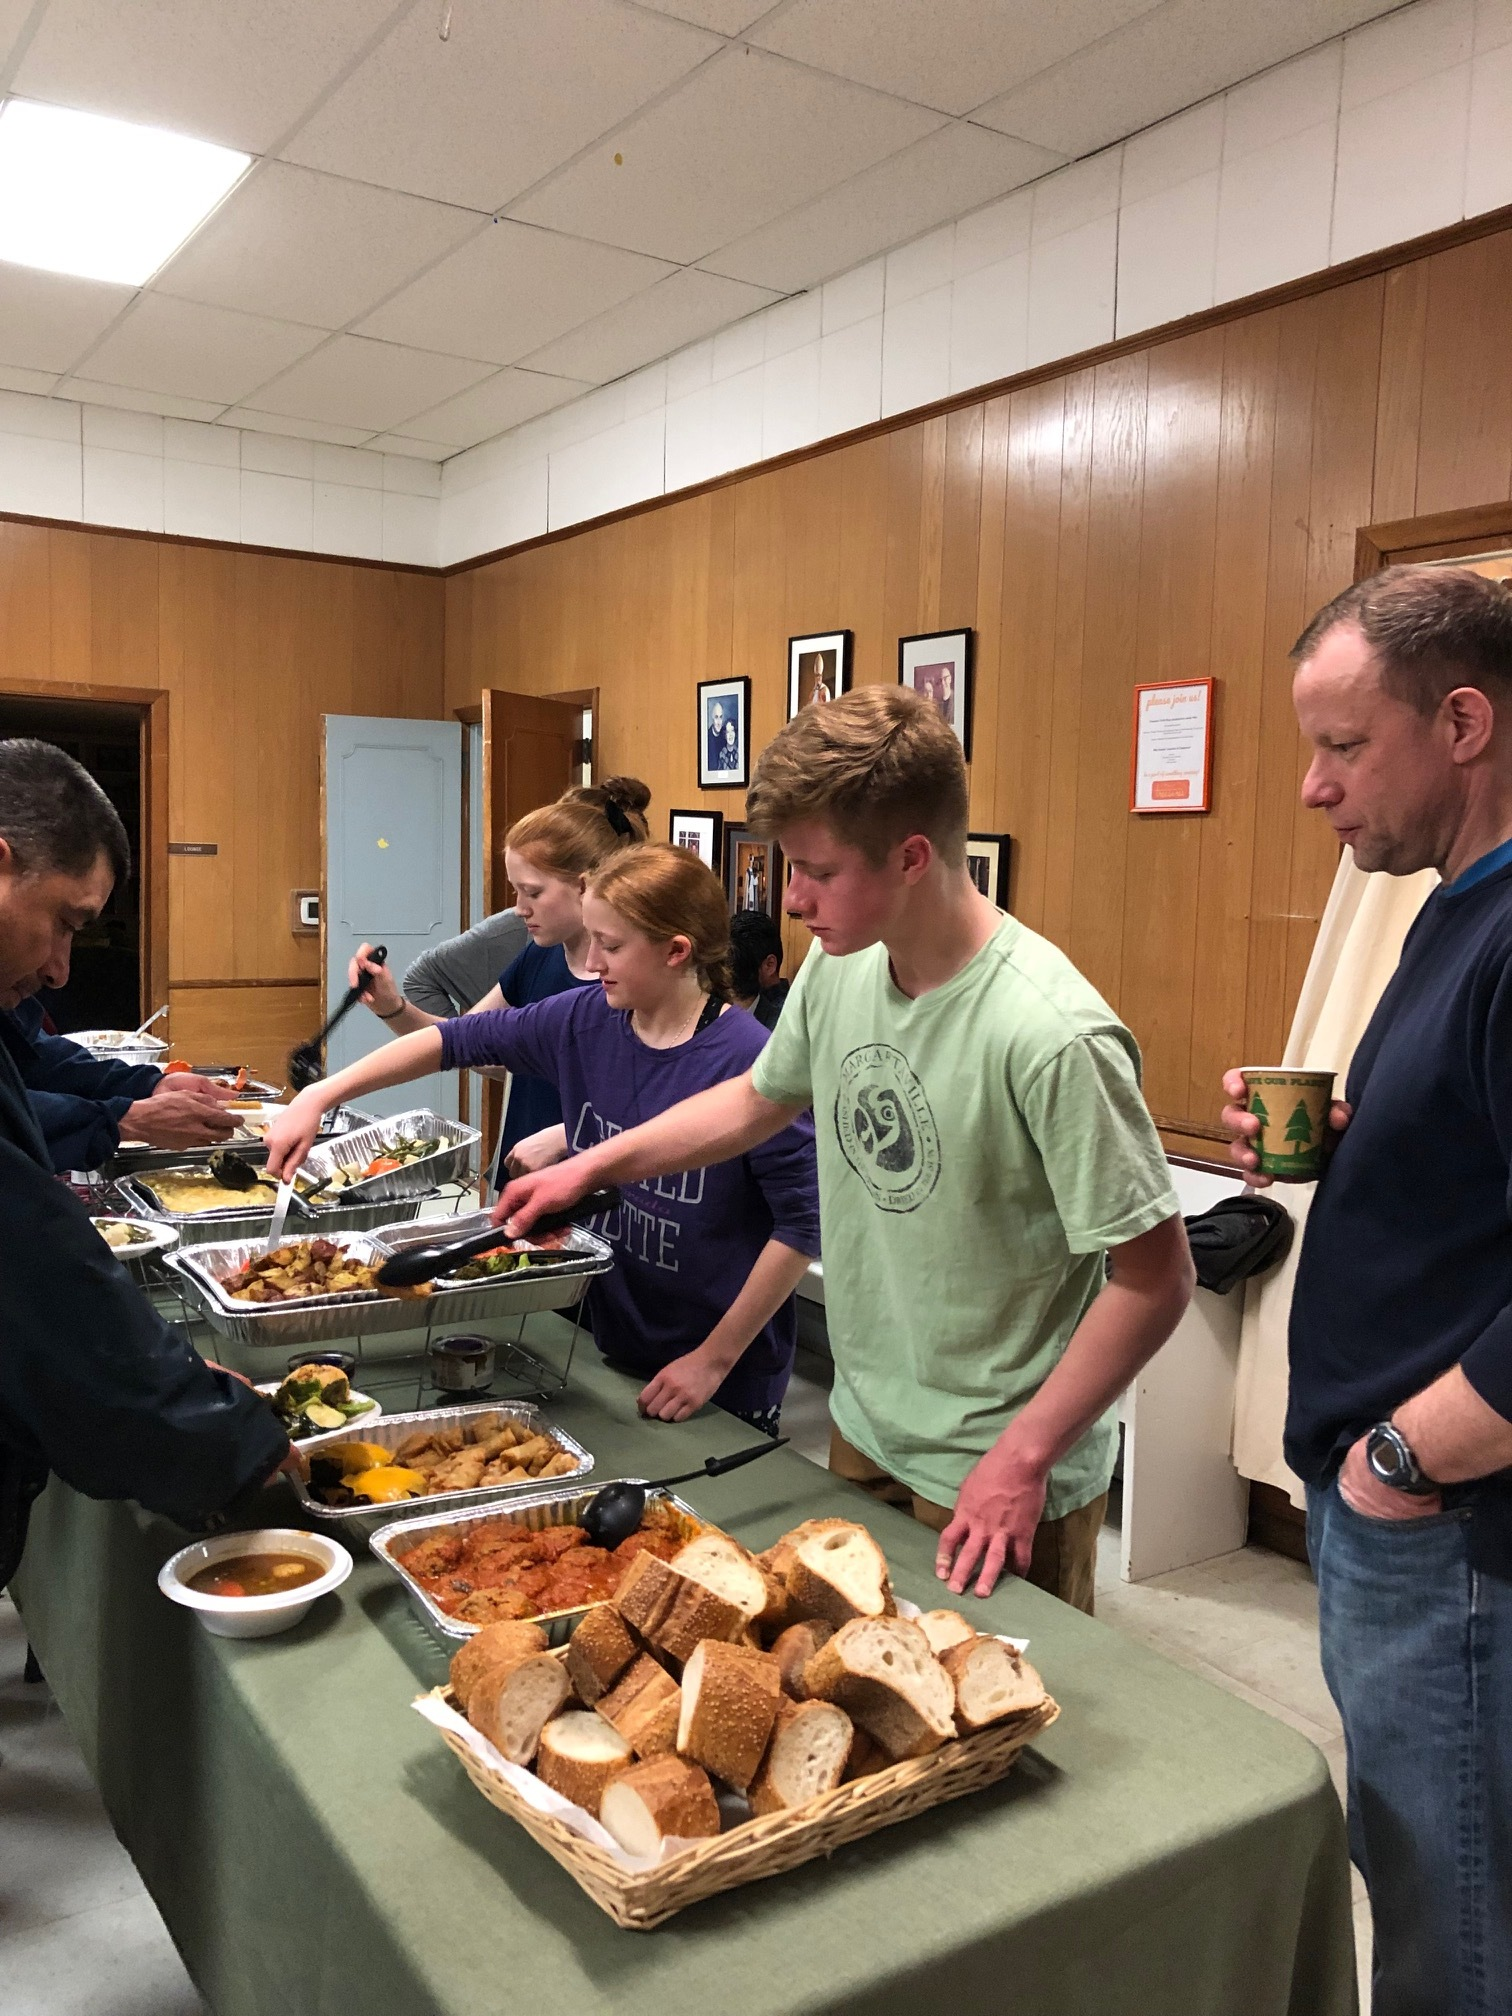 Our Youth Group organized and served one night.